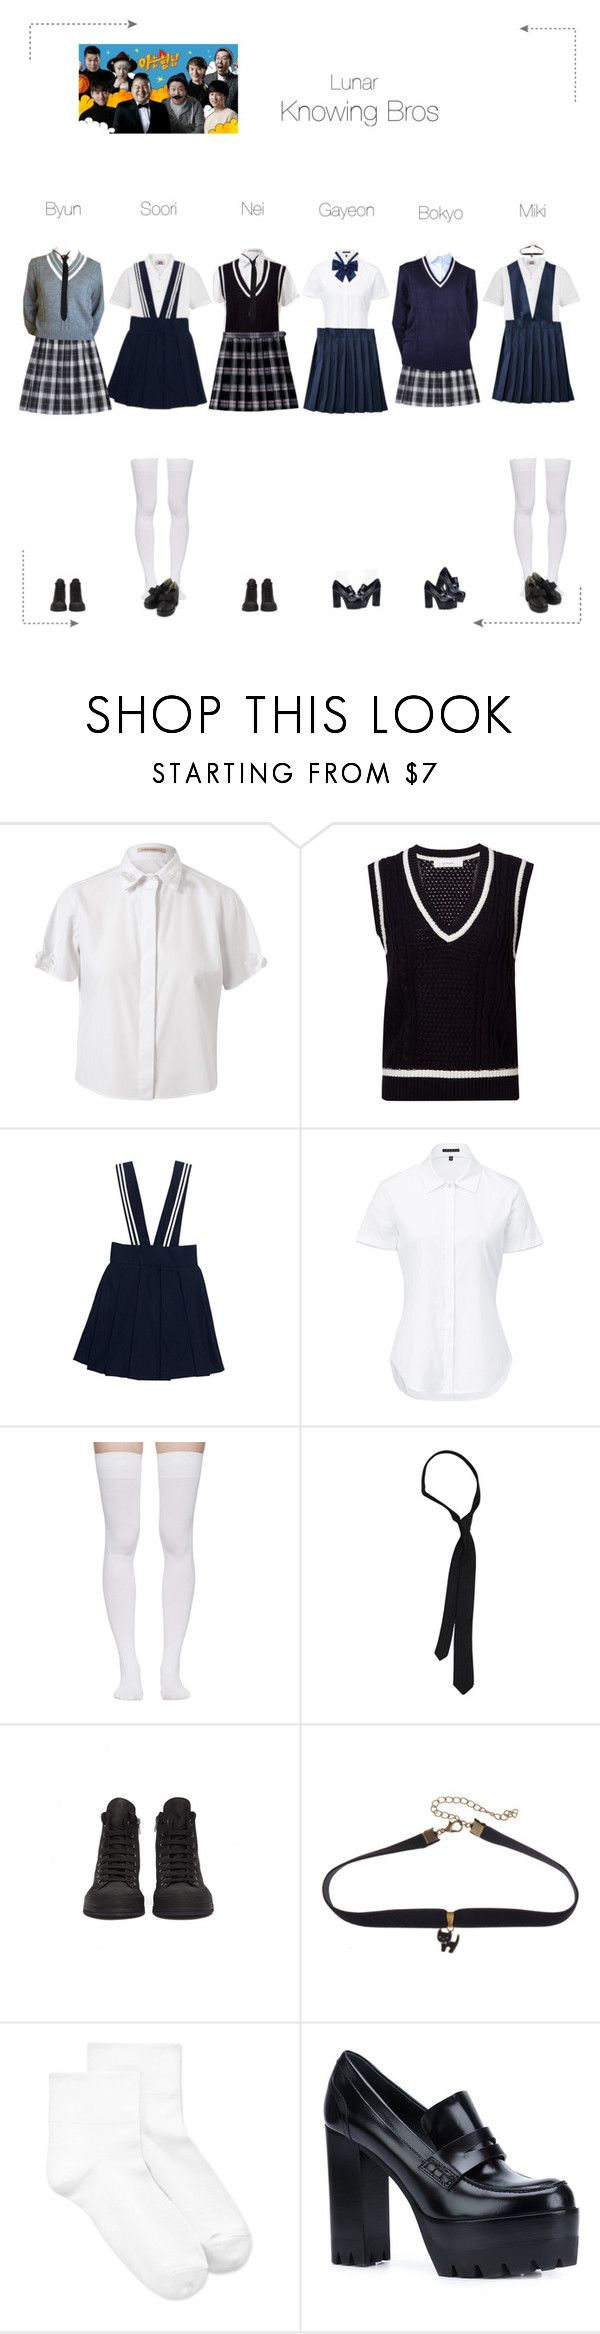 """Lunar (루나) Knowing Bros"" by lunar-official ❤ liked on Polyvore featuring Christopher Kane, Le Ciel Bleu, Theory, French Toast, Marieyat, French Connection, Ann Demeulemeester, HUE, Mulberry and lunarvariety"